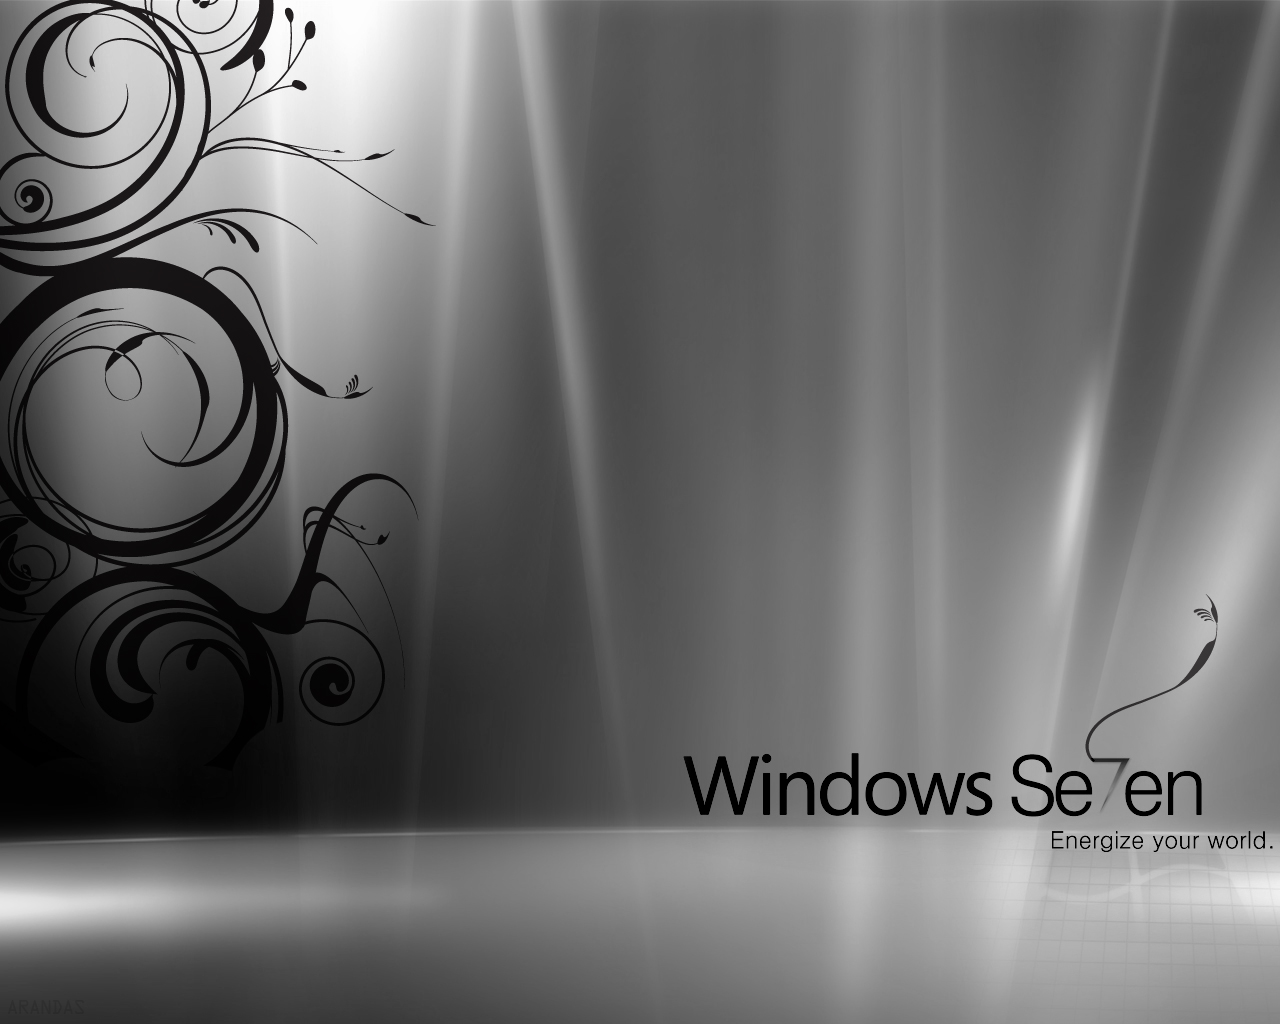 Windows 7 Black & White9310318341 - Windows 7 Black & White - Windows, white, Reflective, Black